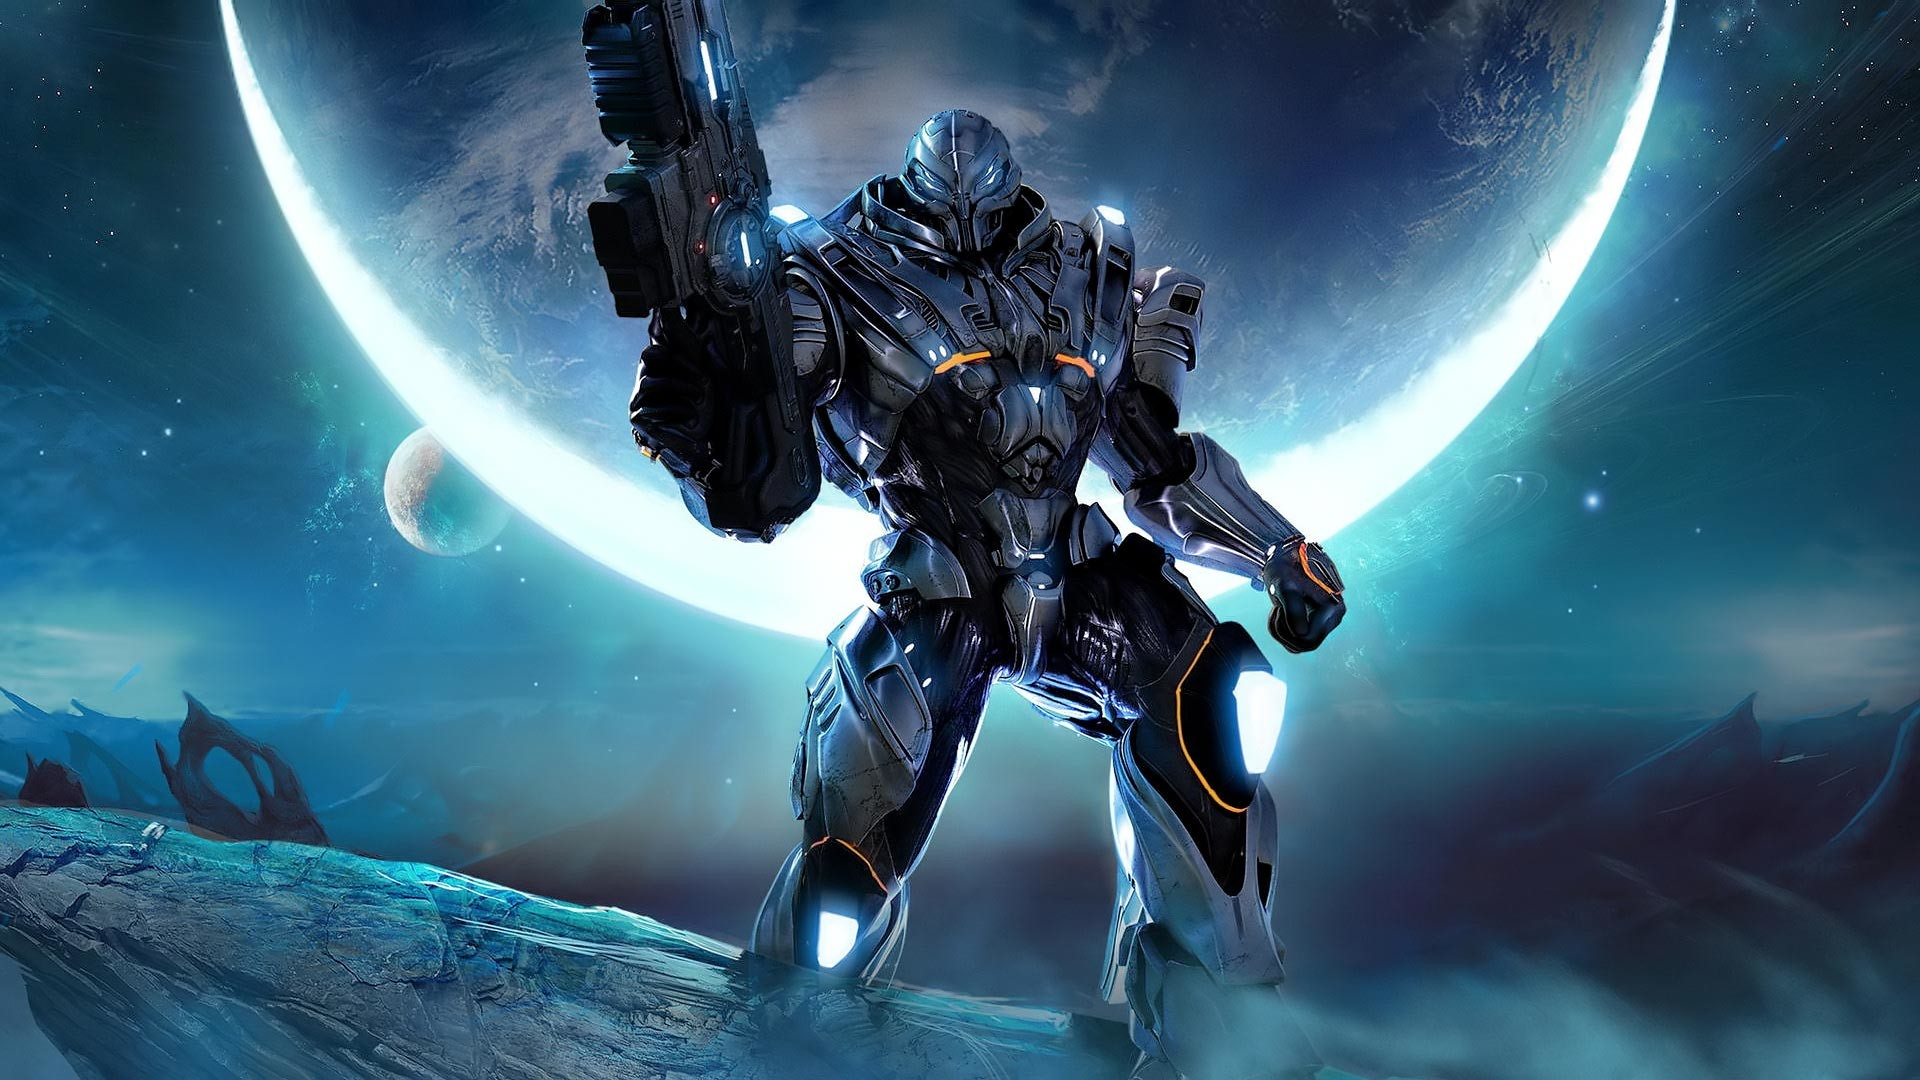 Animated Wallpaper Windows 8 Free Cool Robot Wallpaper 64 Images